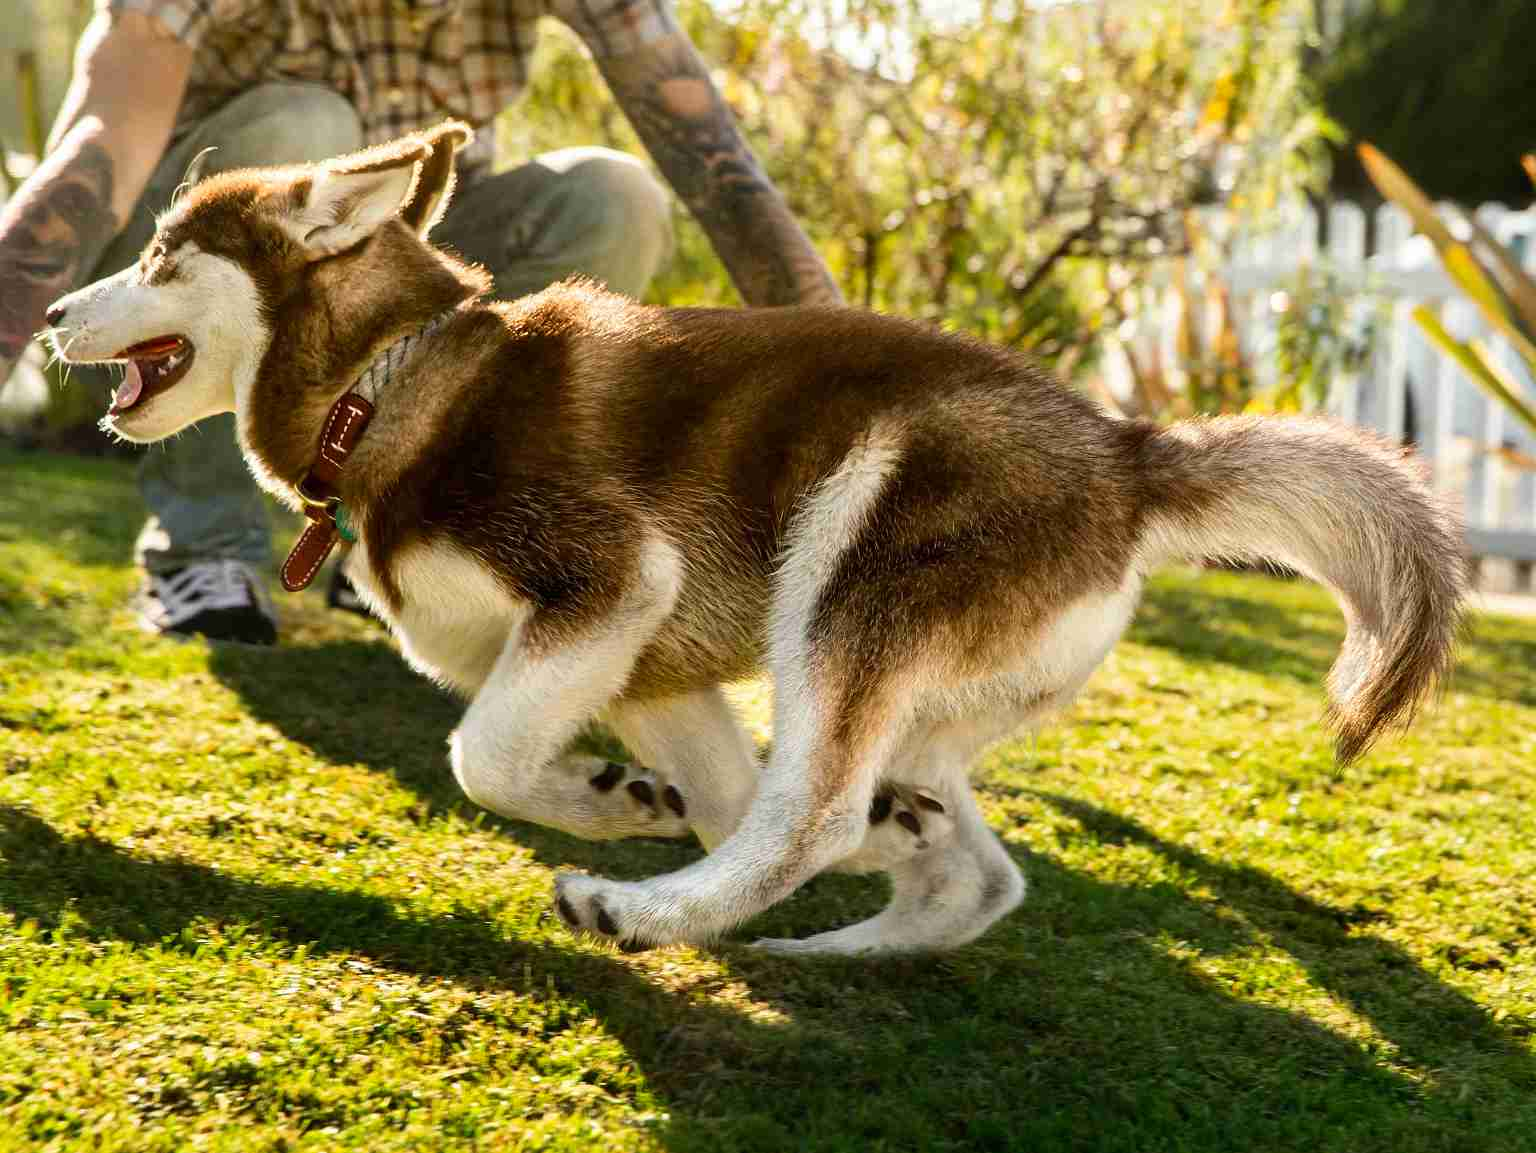 A husky puppy running in the yard and playing with its owner